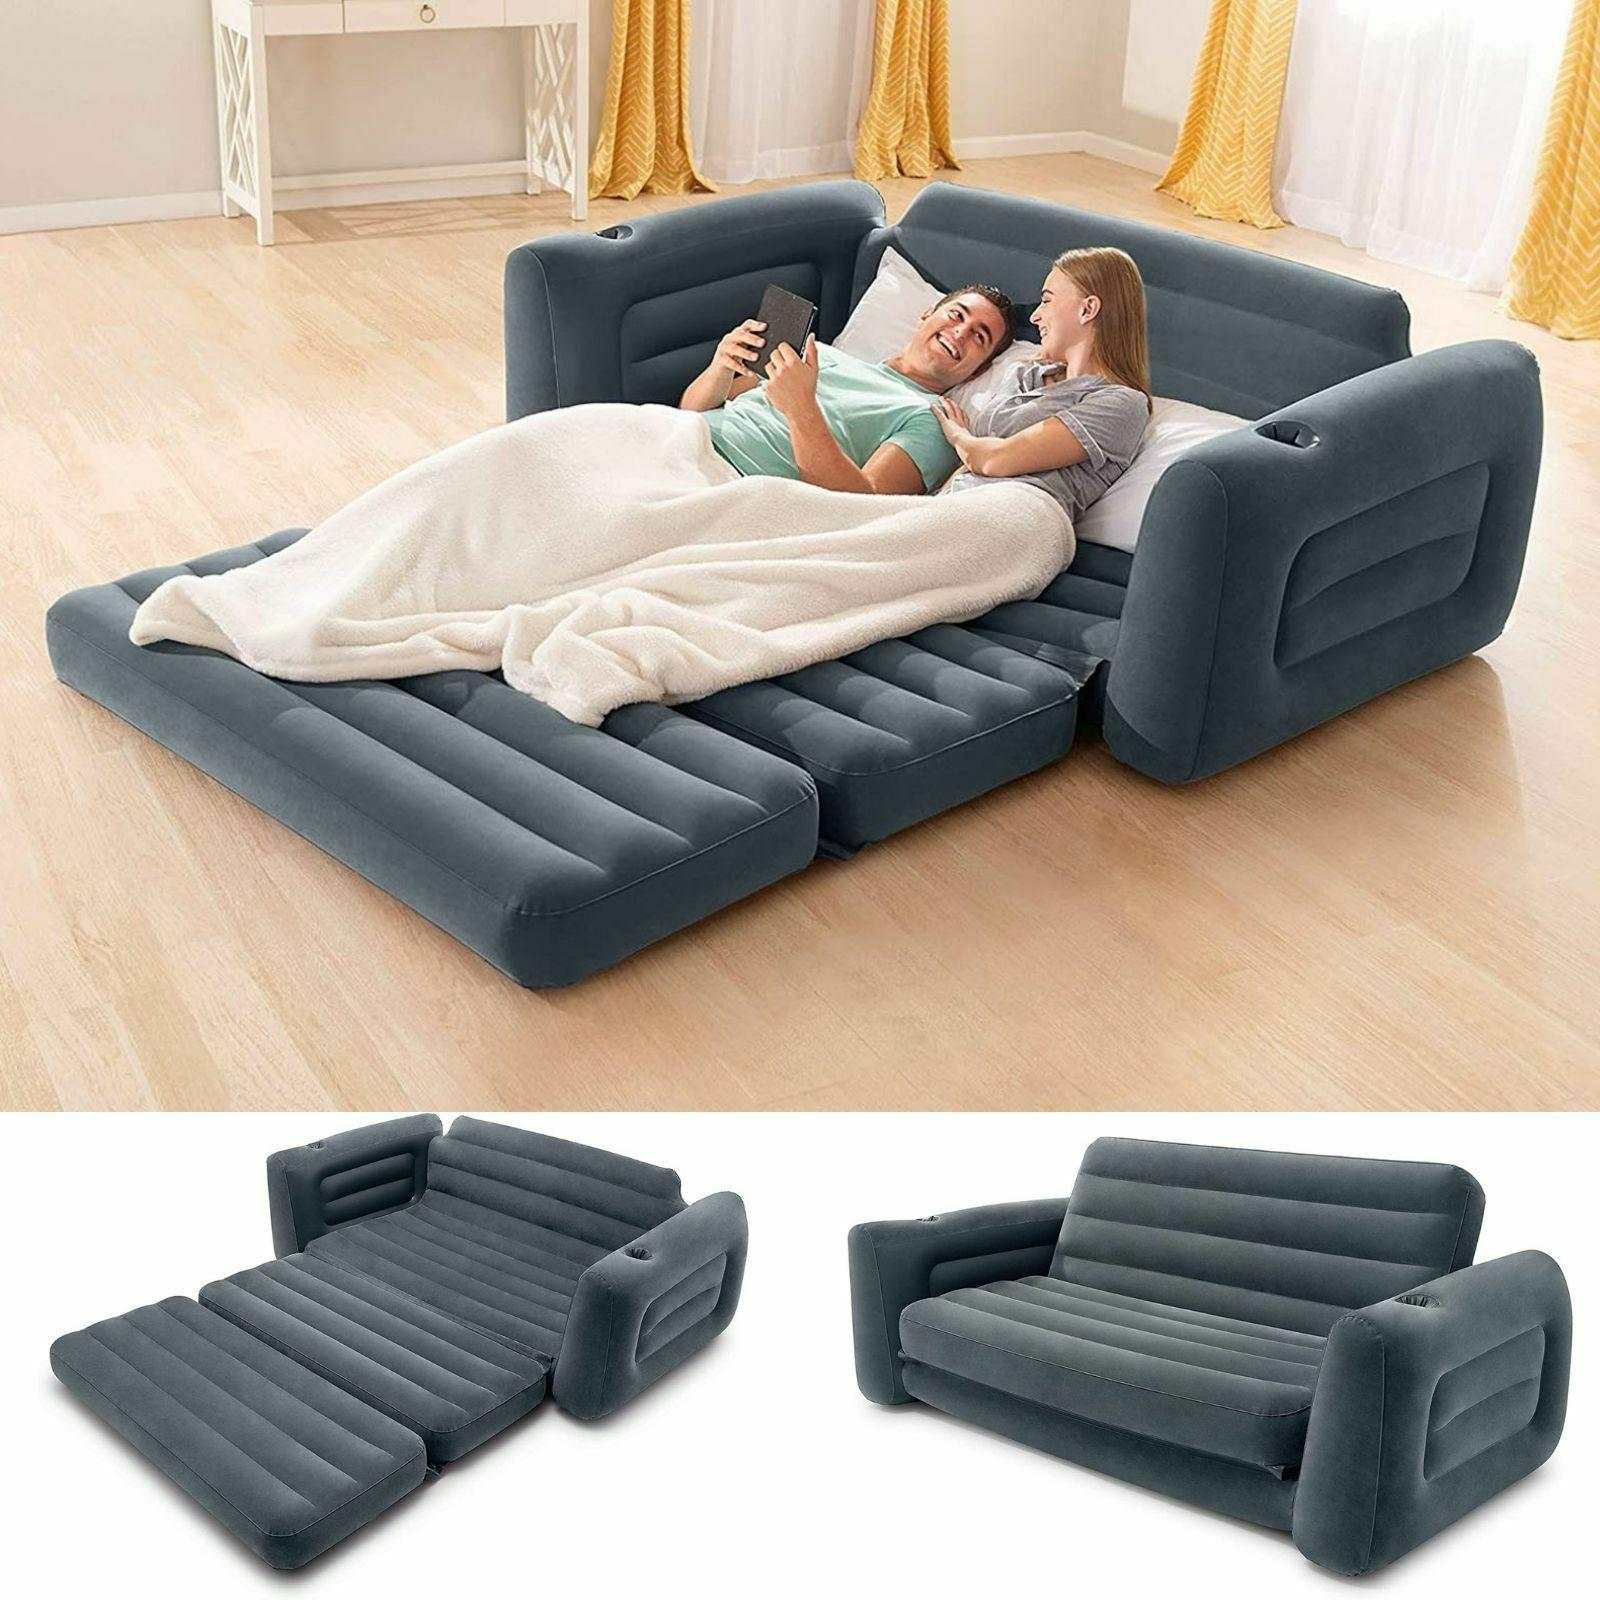 Sofa Bed Sleeper Queen Size Inflatable Air Folding Futon Con